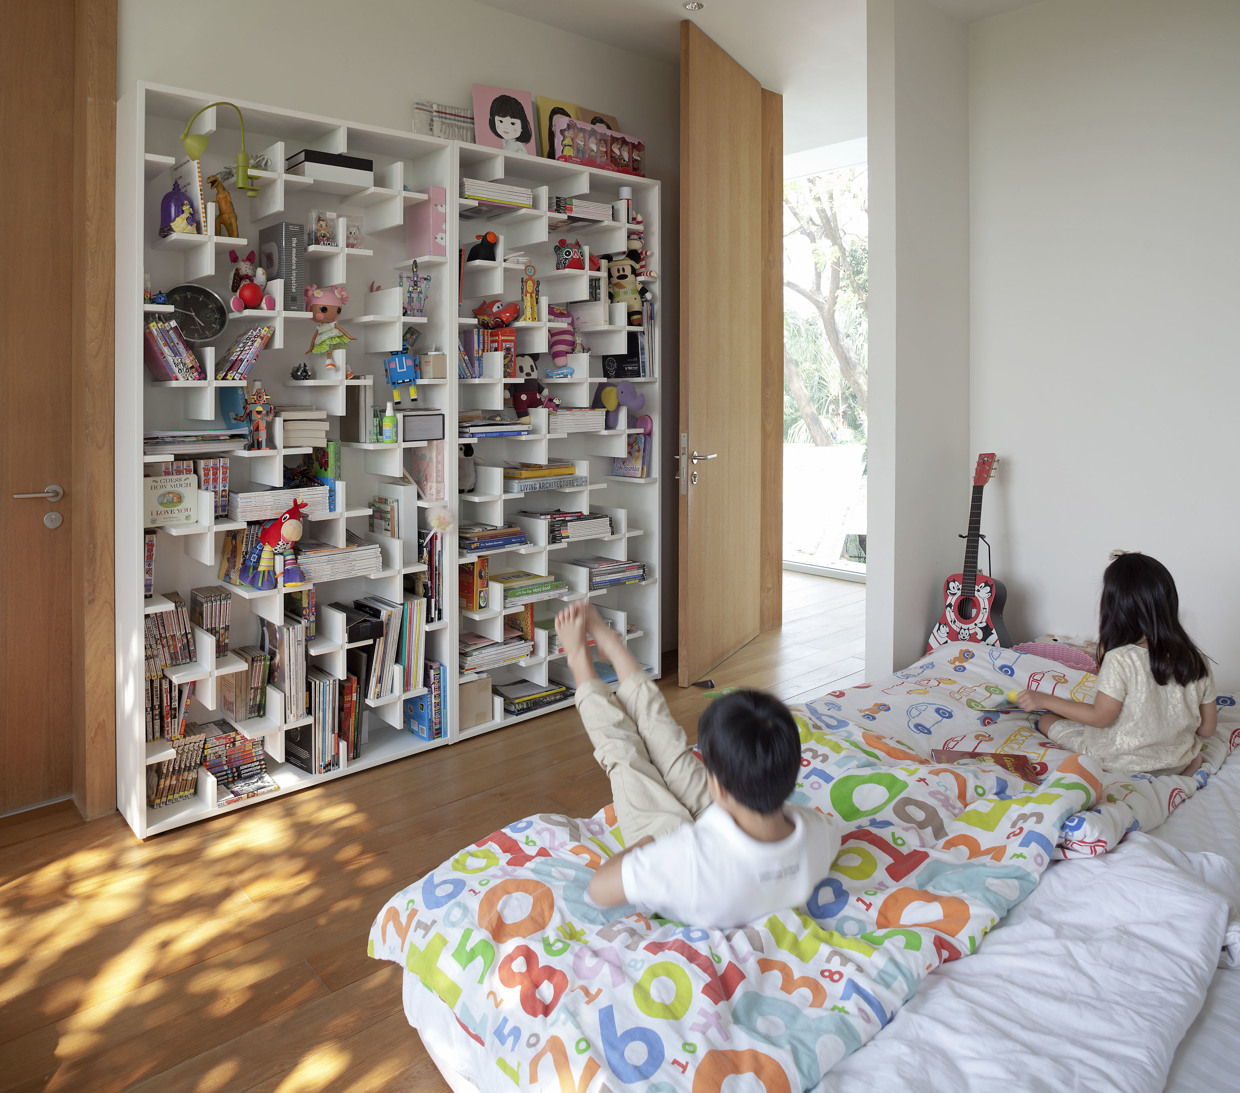 Creative kids room interior design ideas for Designers room